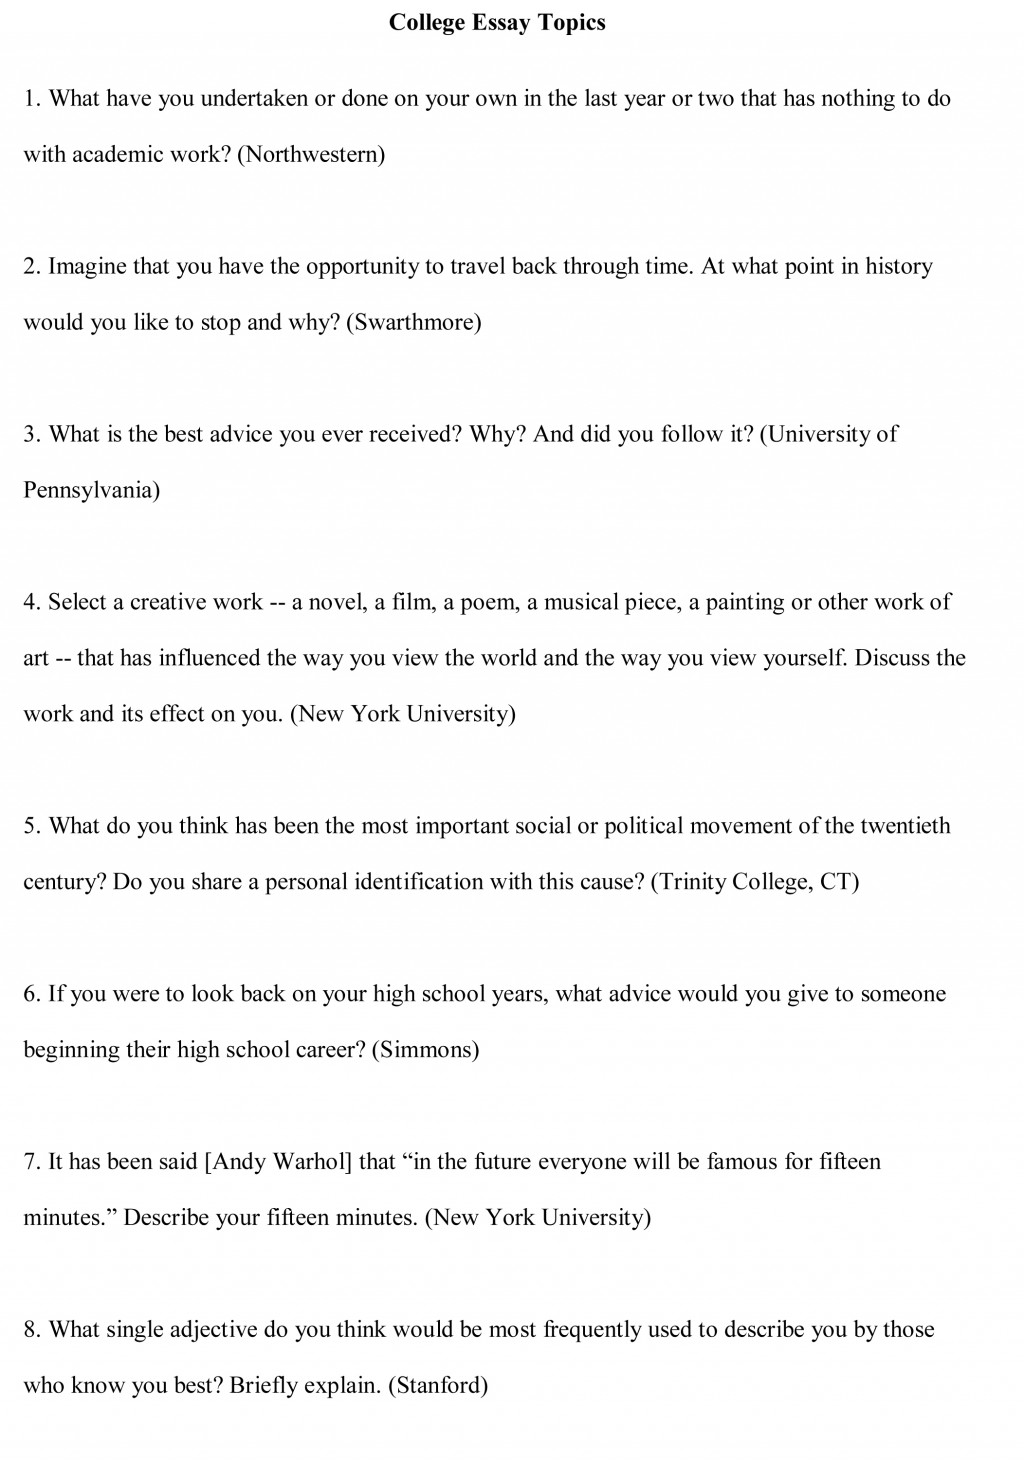 023 Free Essay Generator College Topics Sample1 Impressive Reddit No Sign Up Large